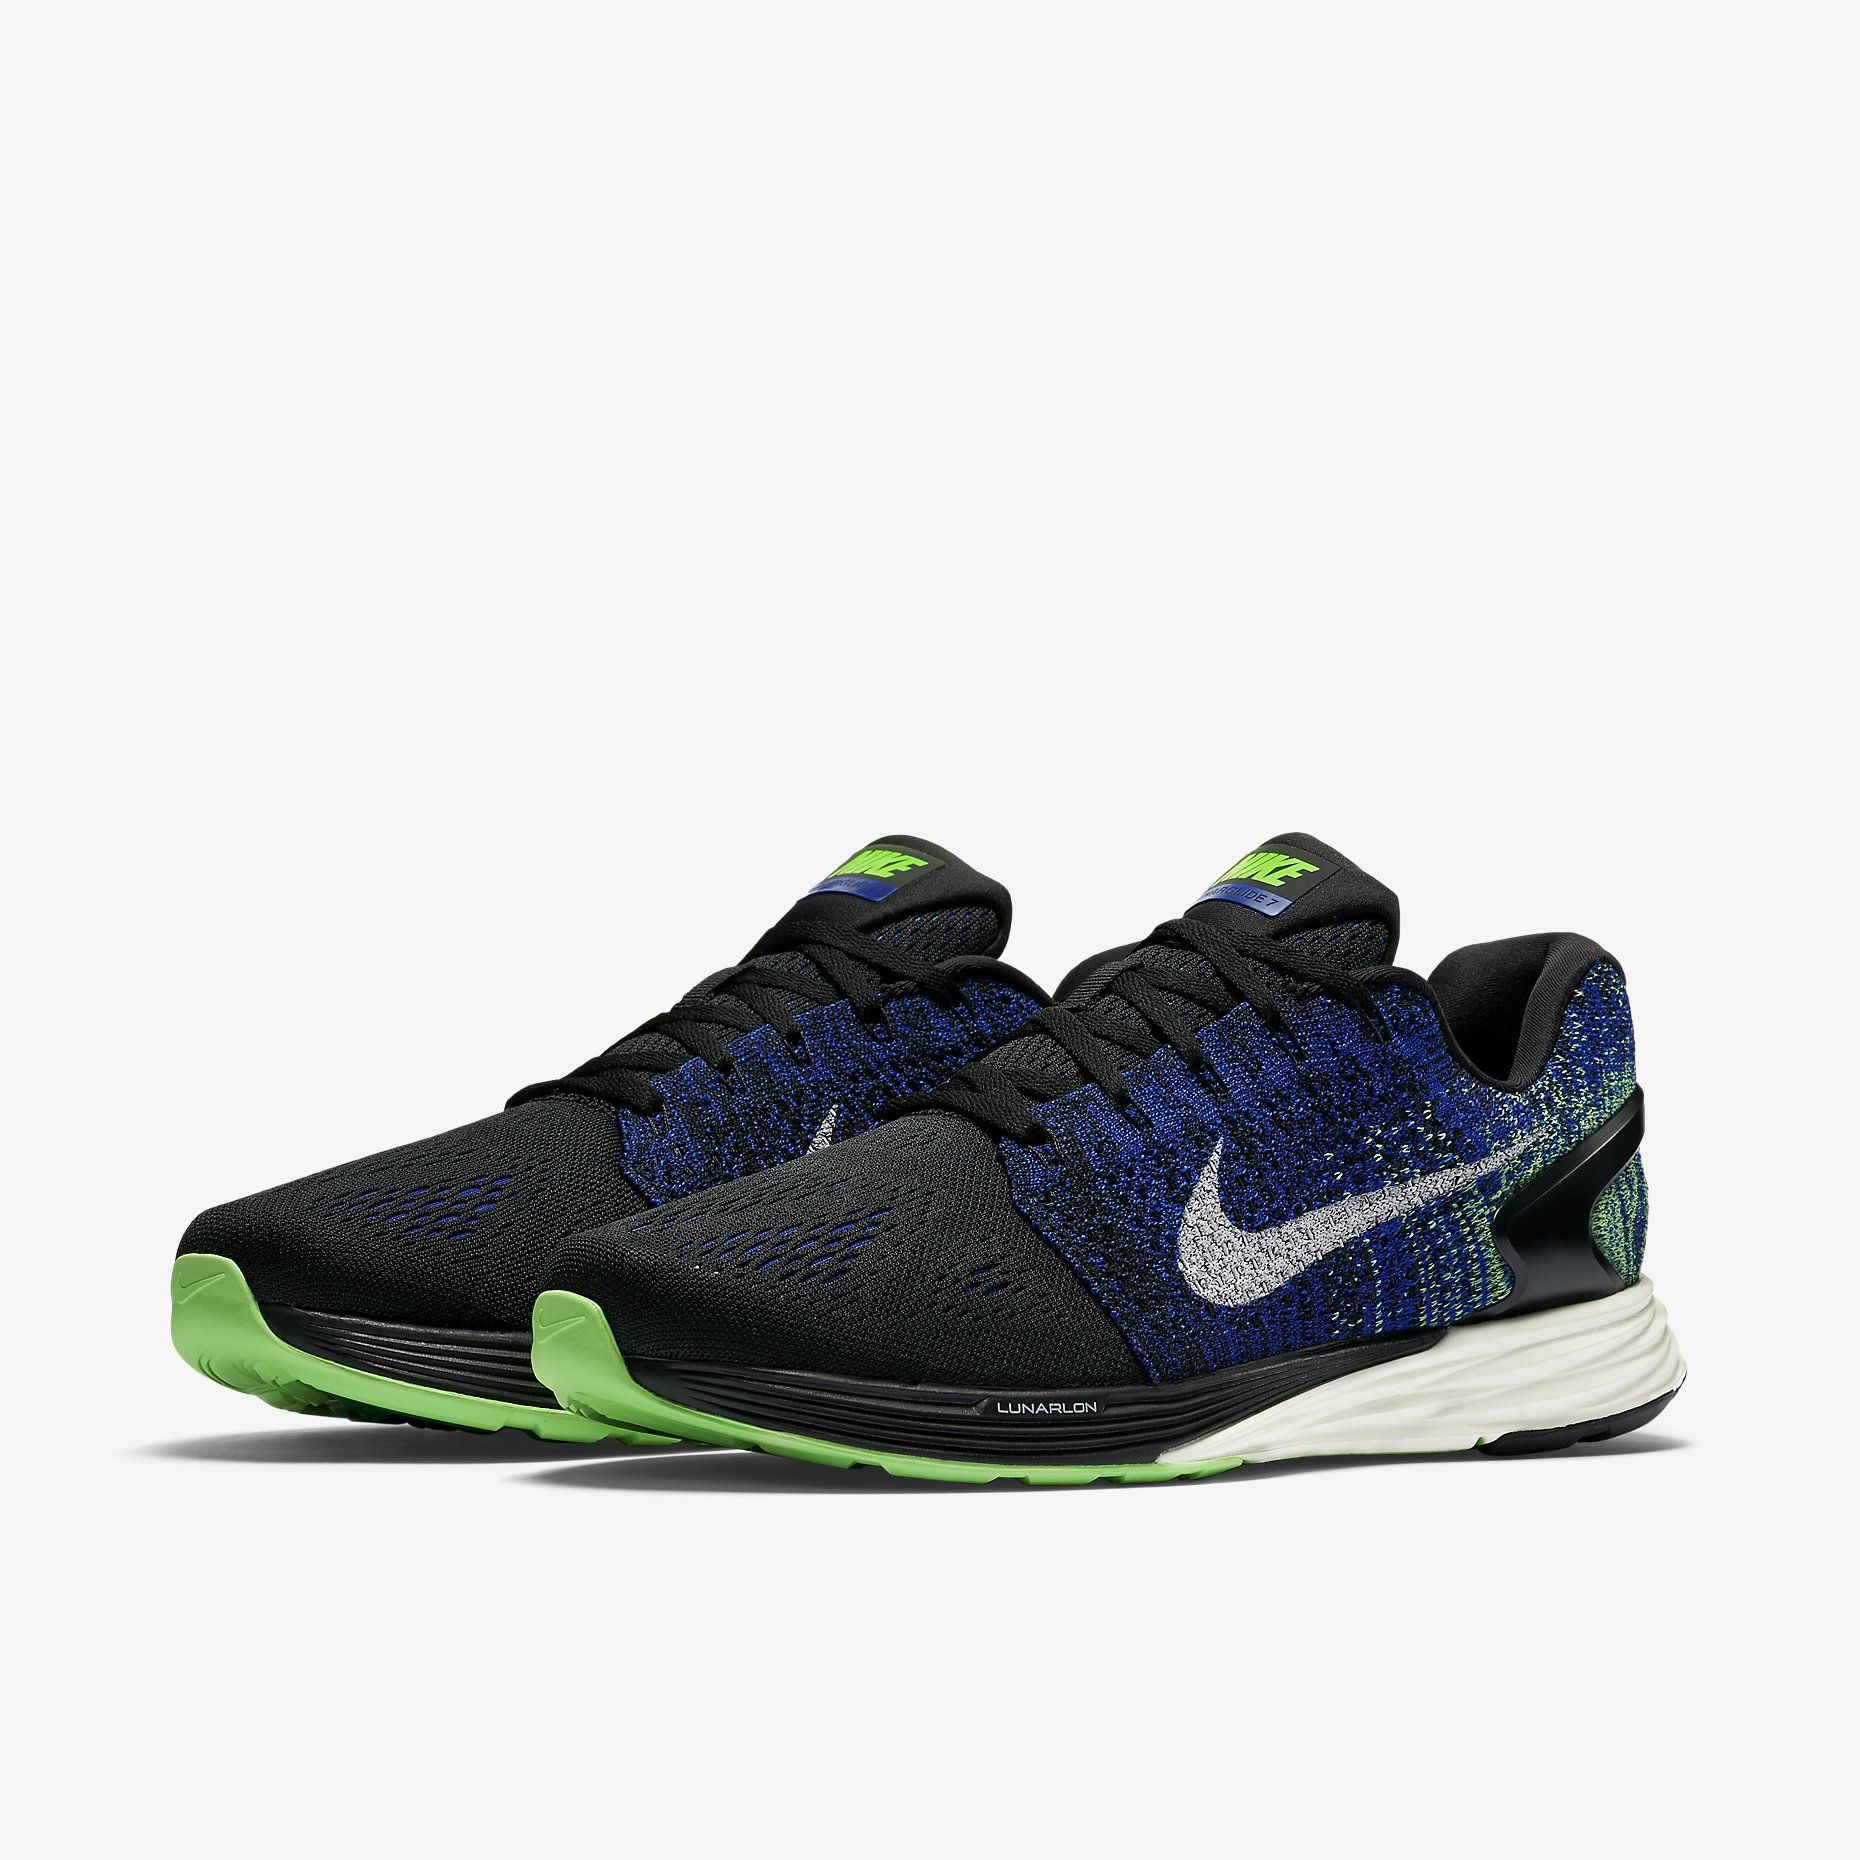 new products bf80c 65d59 Nike LunarGlide 7 (Black Racer Blue Voltage Green Sail)   Nike.com